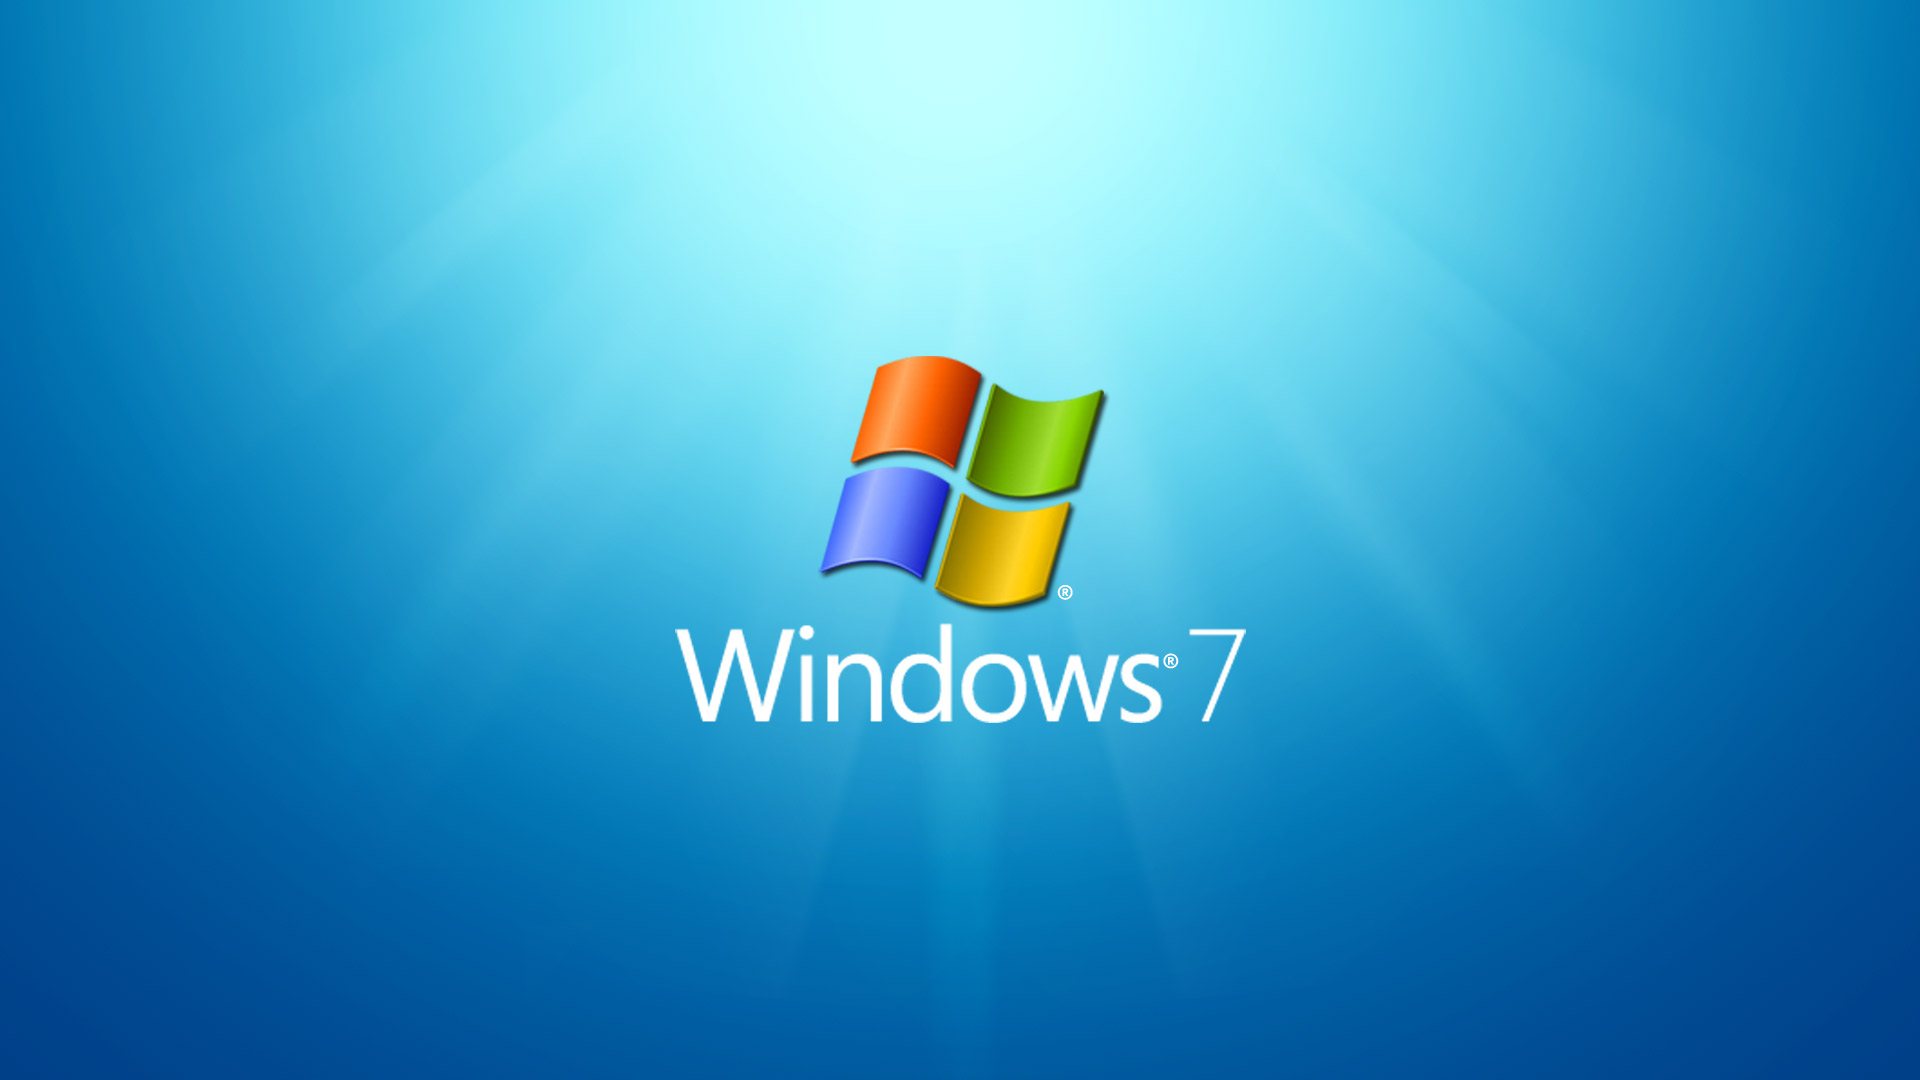 Windows 7 на ПК